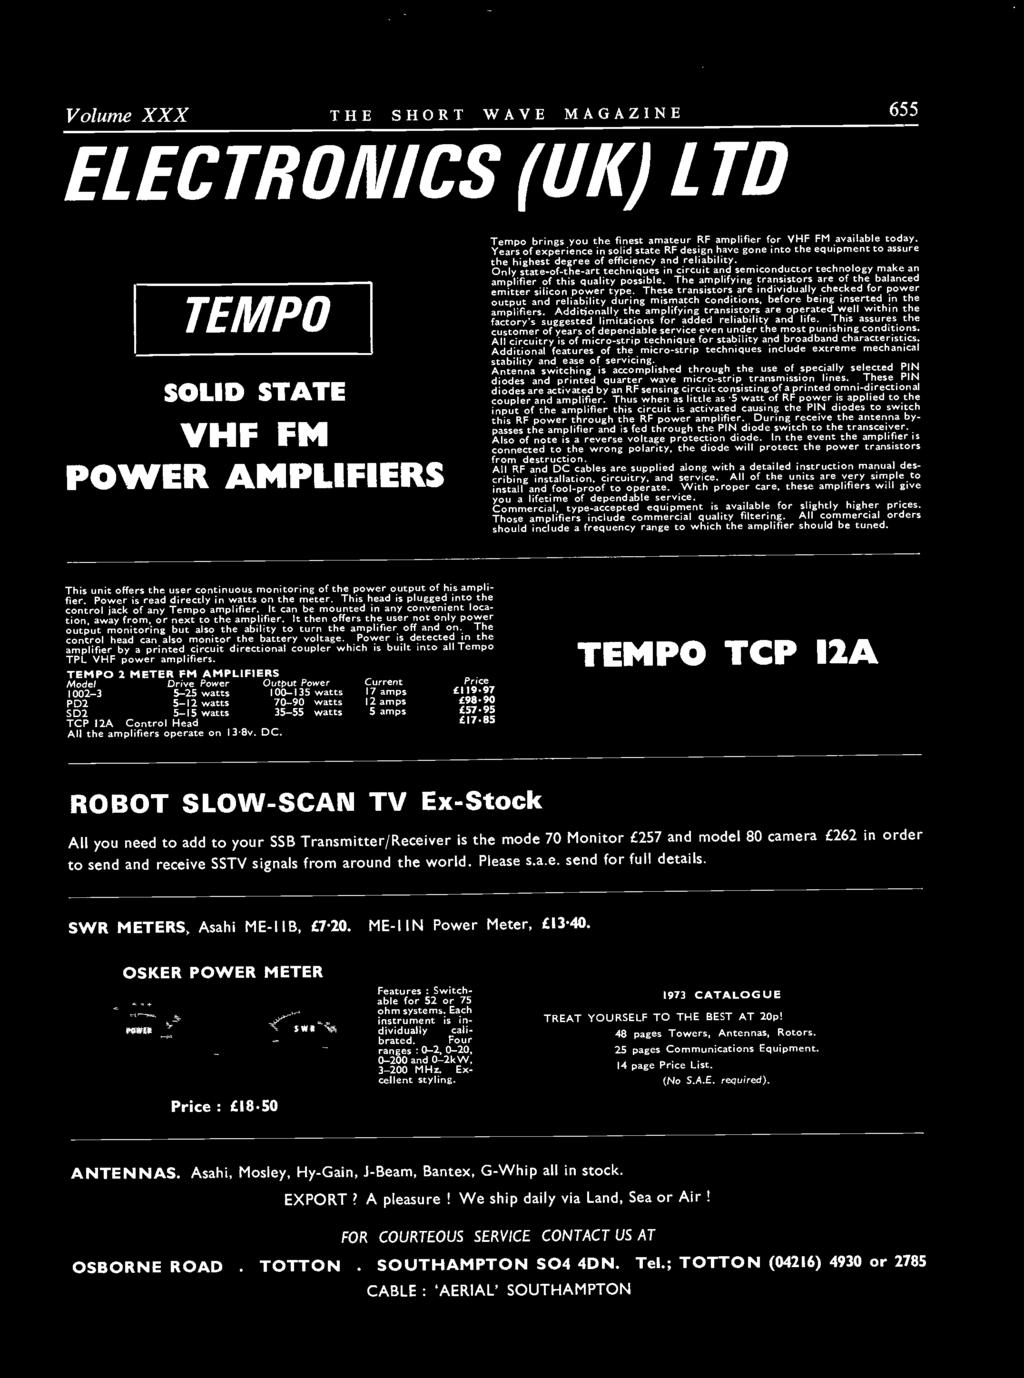 Vol Xxx January 1973 Number 11 Pdf Carling Hazard Switch Page 2 Land Rover Zone Additionally The Amplifying Transistors Are Operated Well Within Factorys Suggested Limitations For Added Reliability And